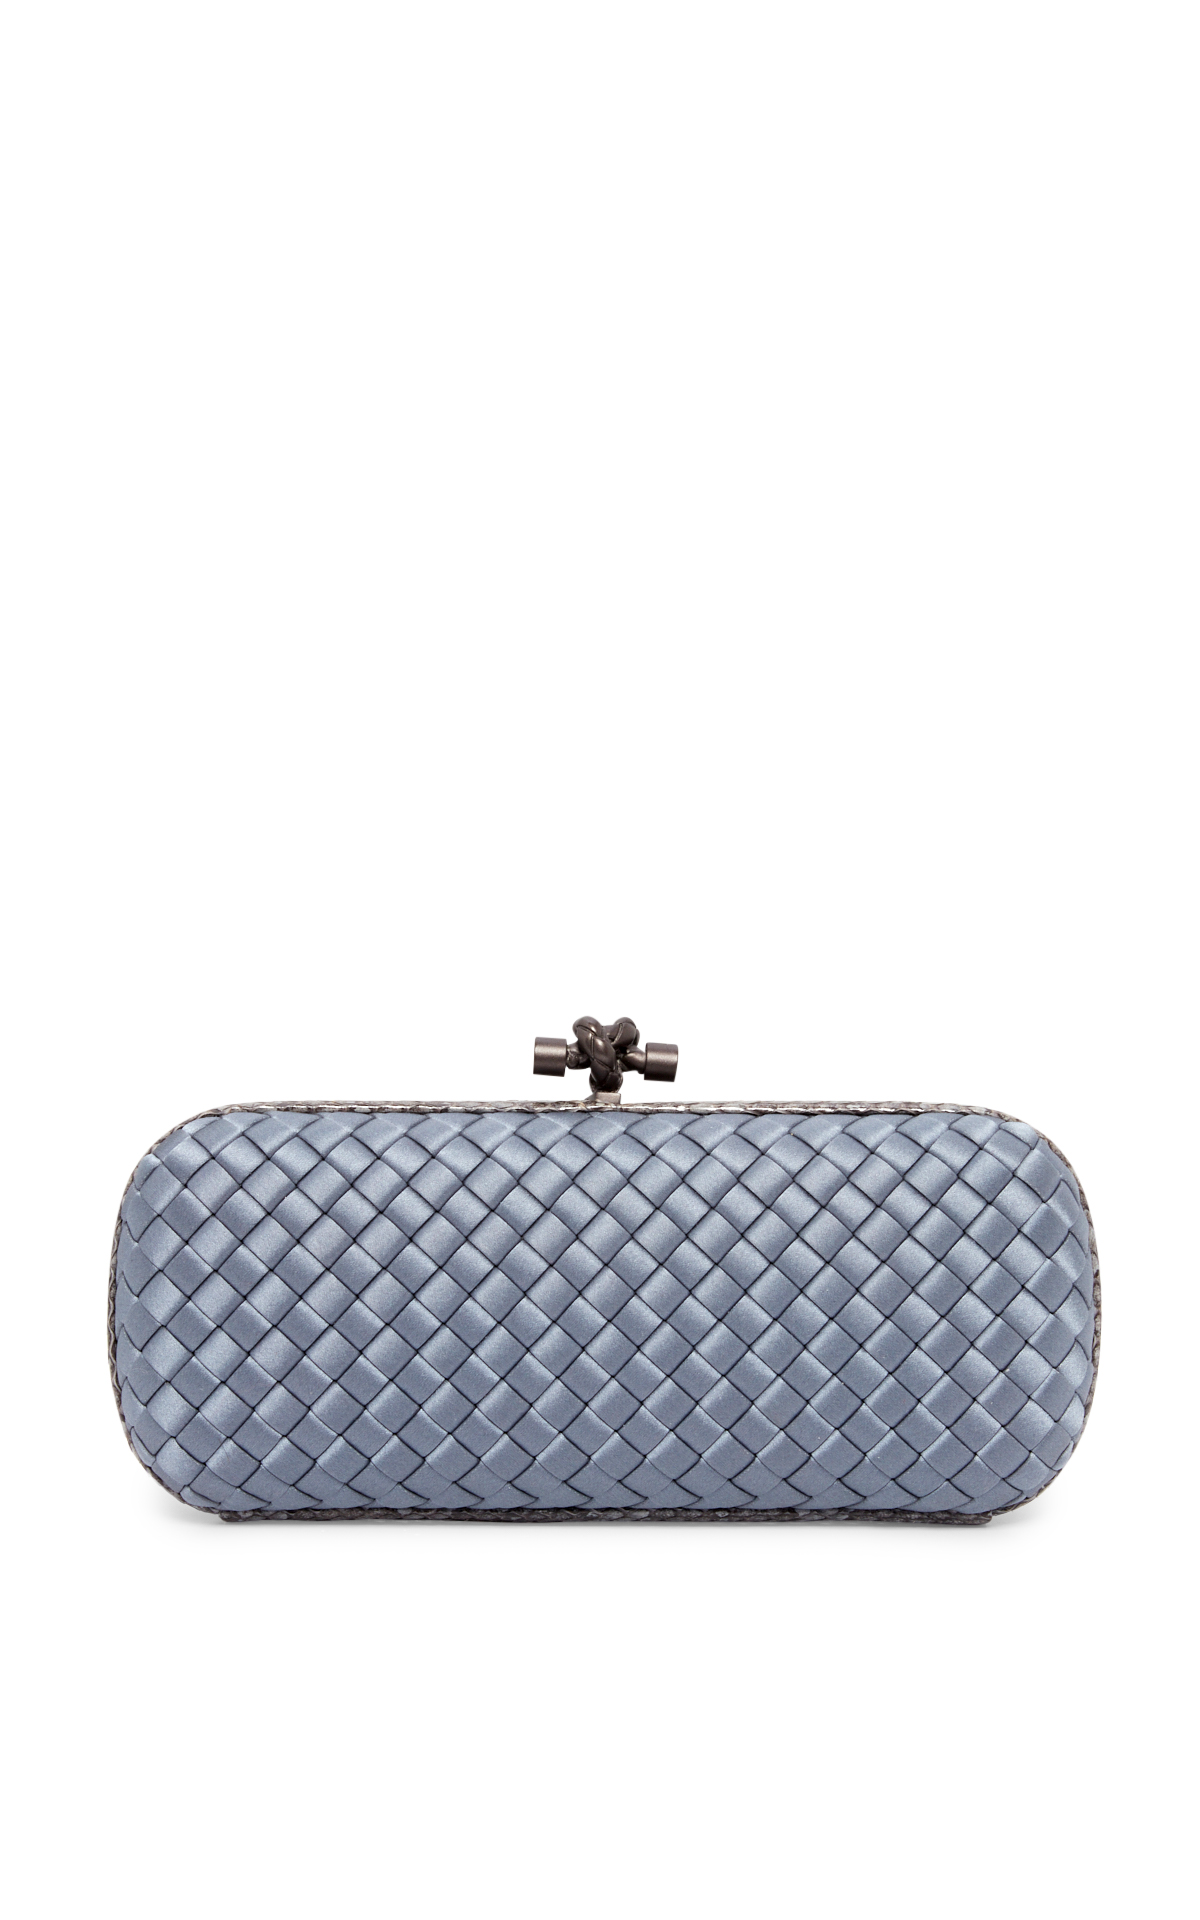 Pouch by Bottega Veneta